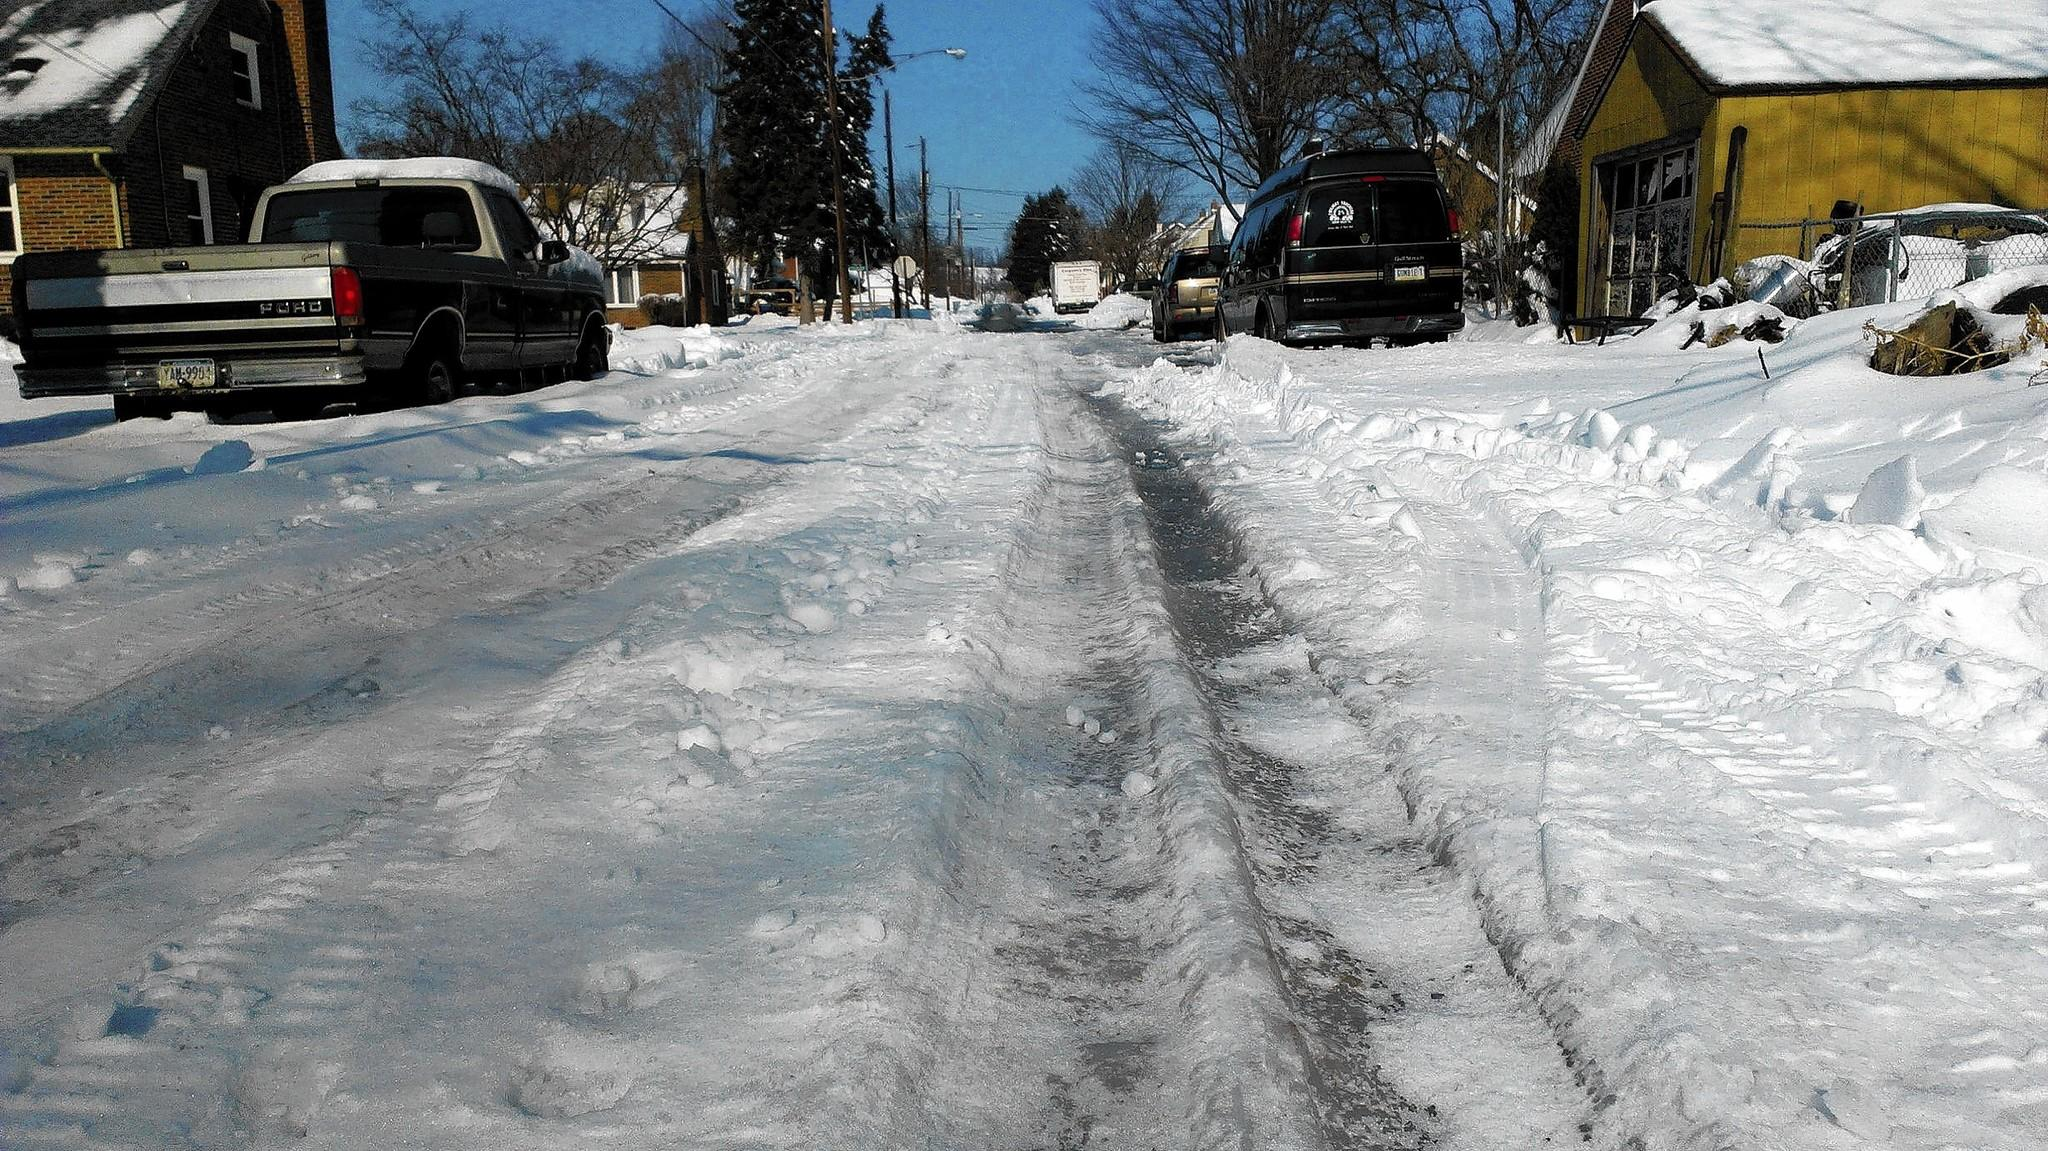 Ruts line the snowy block at the end of N. Ott Street in South Whitehall Township on Feb. 7. Residents question why the township won't plow. The township says that section was left unfinished by the developer decades ago and isn't a public street requiring public maintenance.